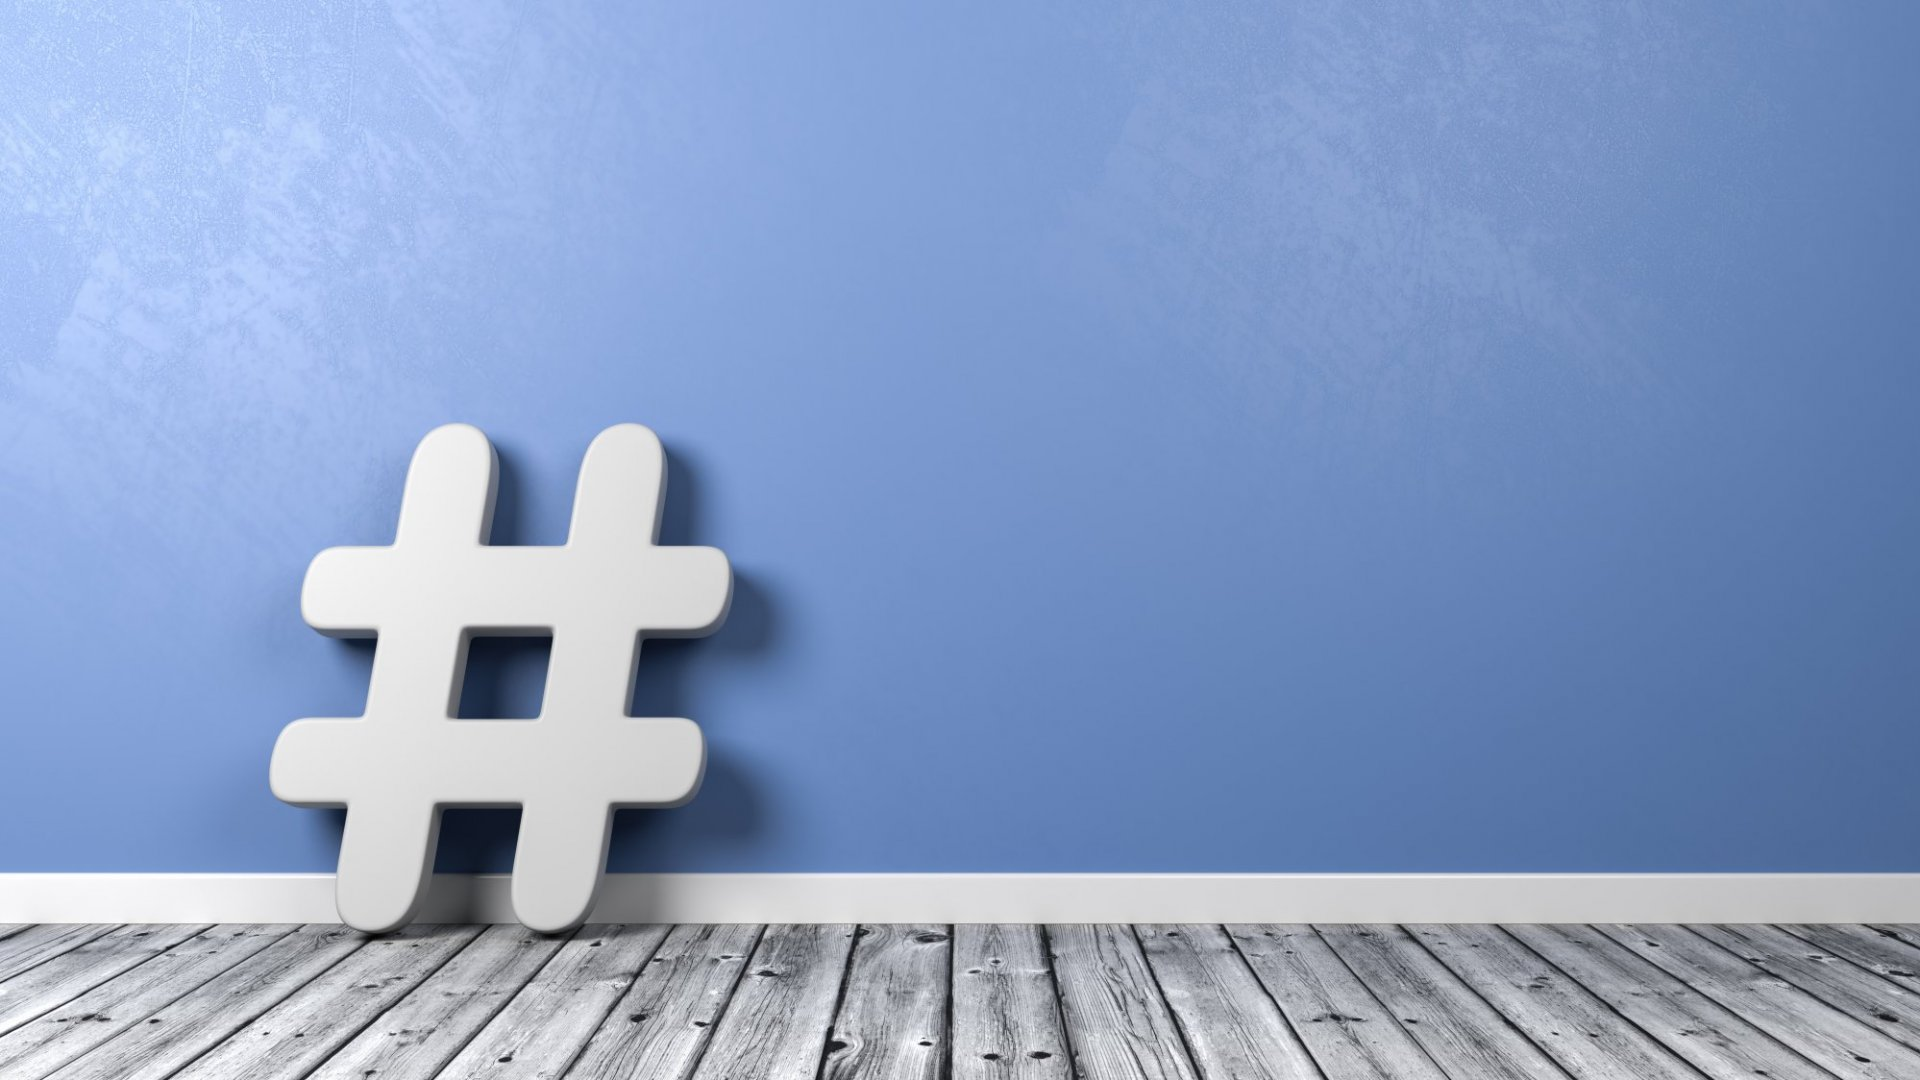 How to Use Hashtags on Social Media Without Being Spammy